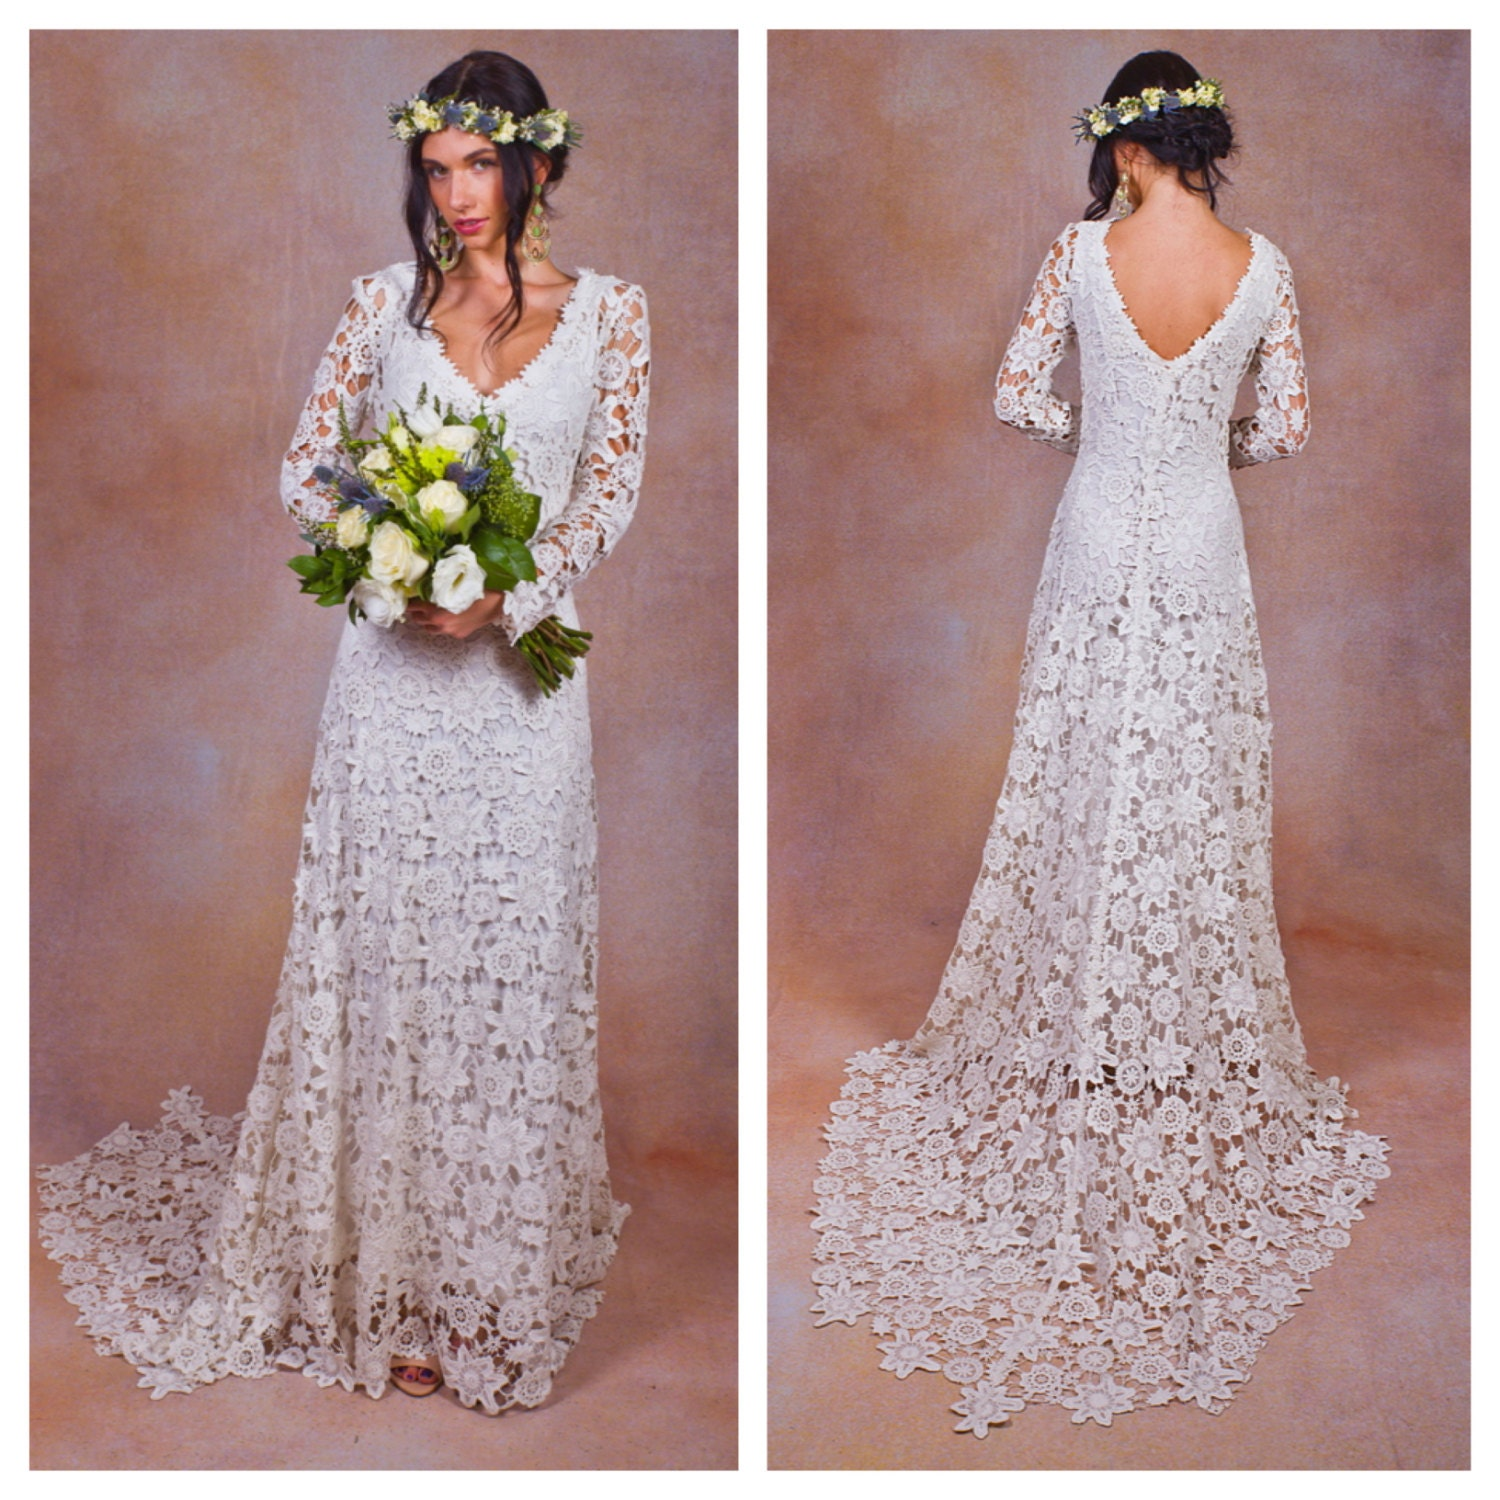 Hippie Boho Wedding Dress With Train Rustic BOHO WEDDING DRESS